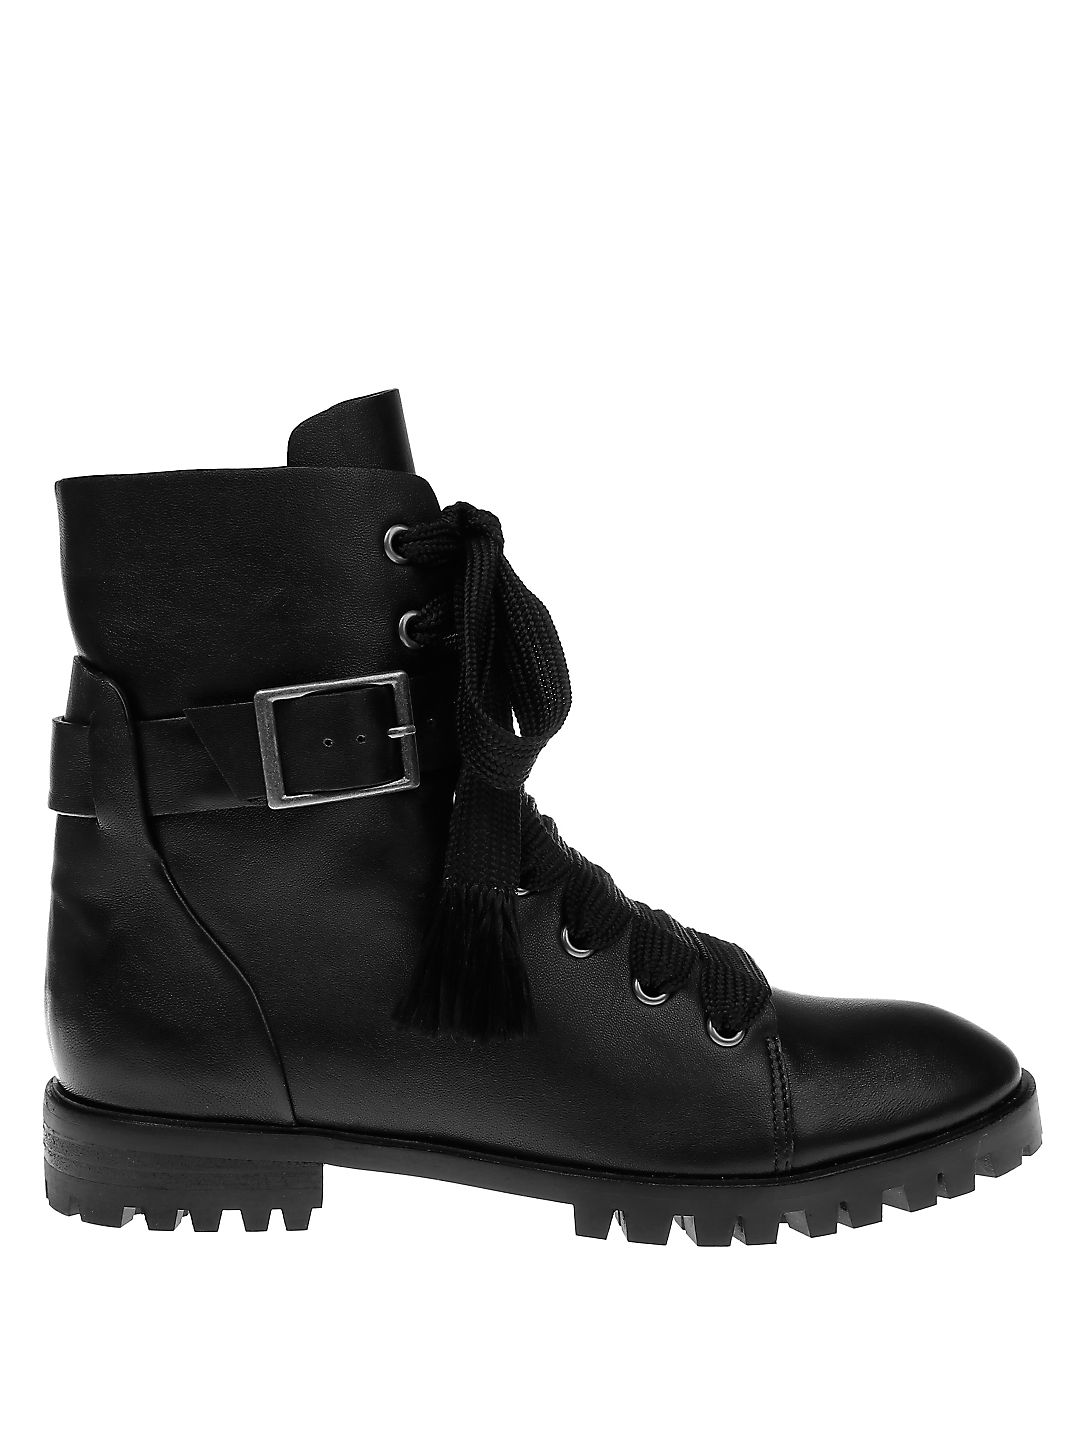 Celine Buckle Leather Booties